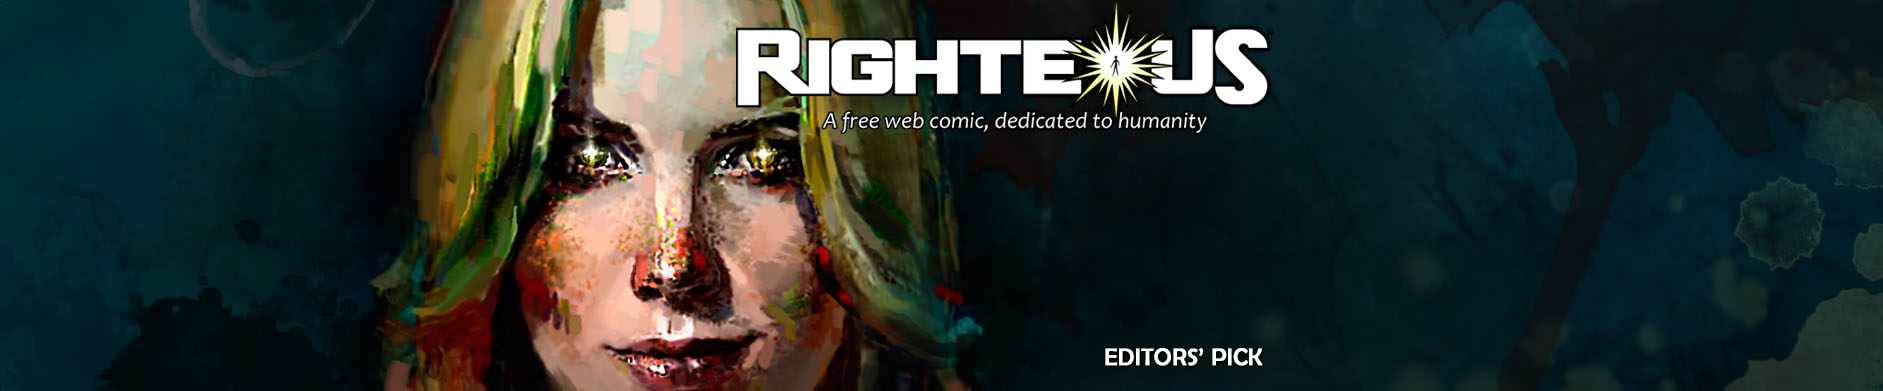 RighteousComic's - Righteous